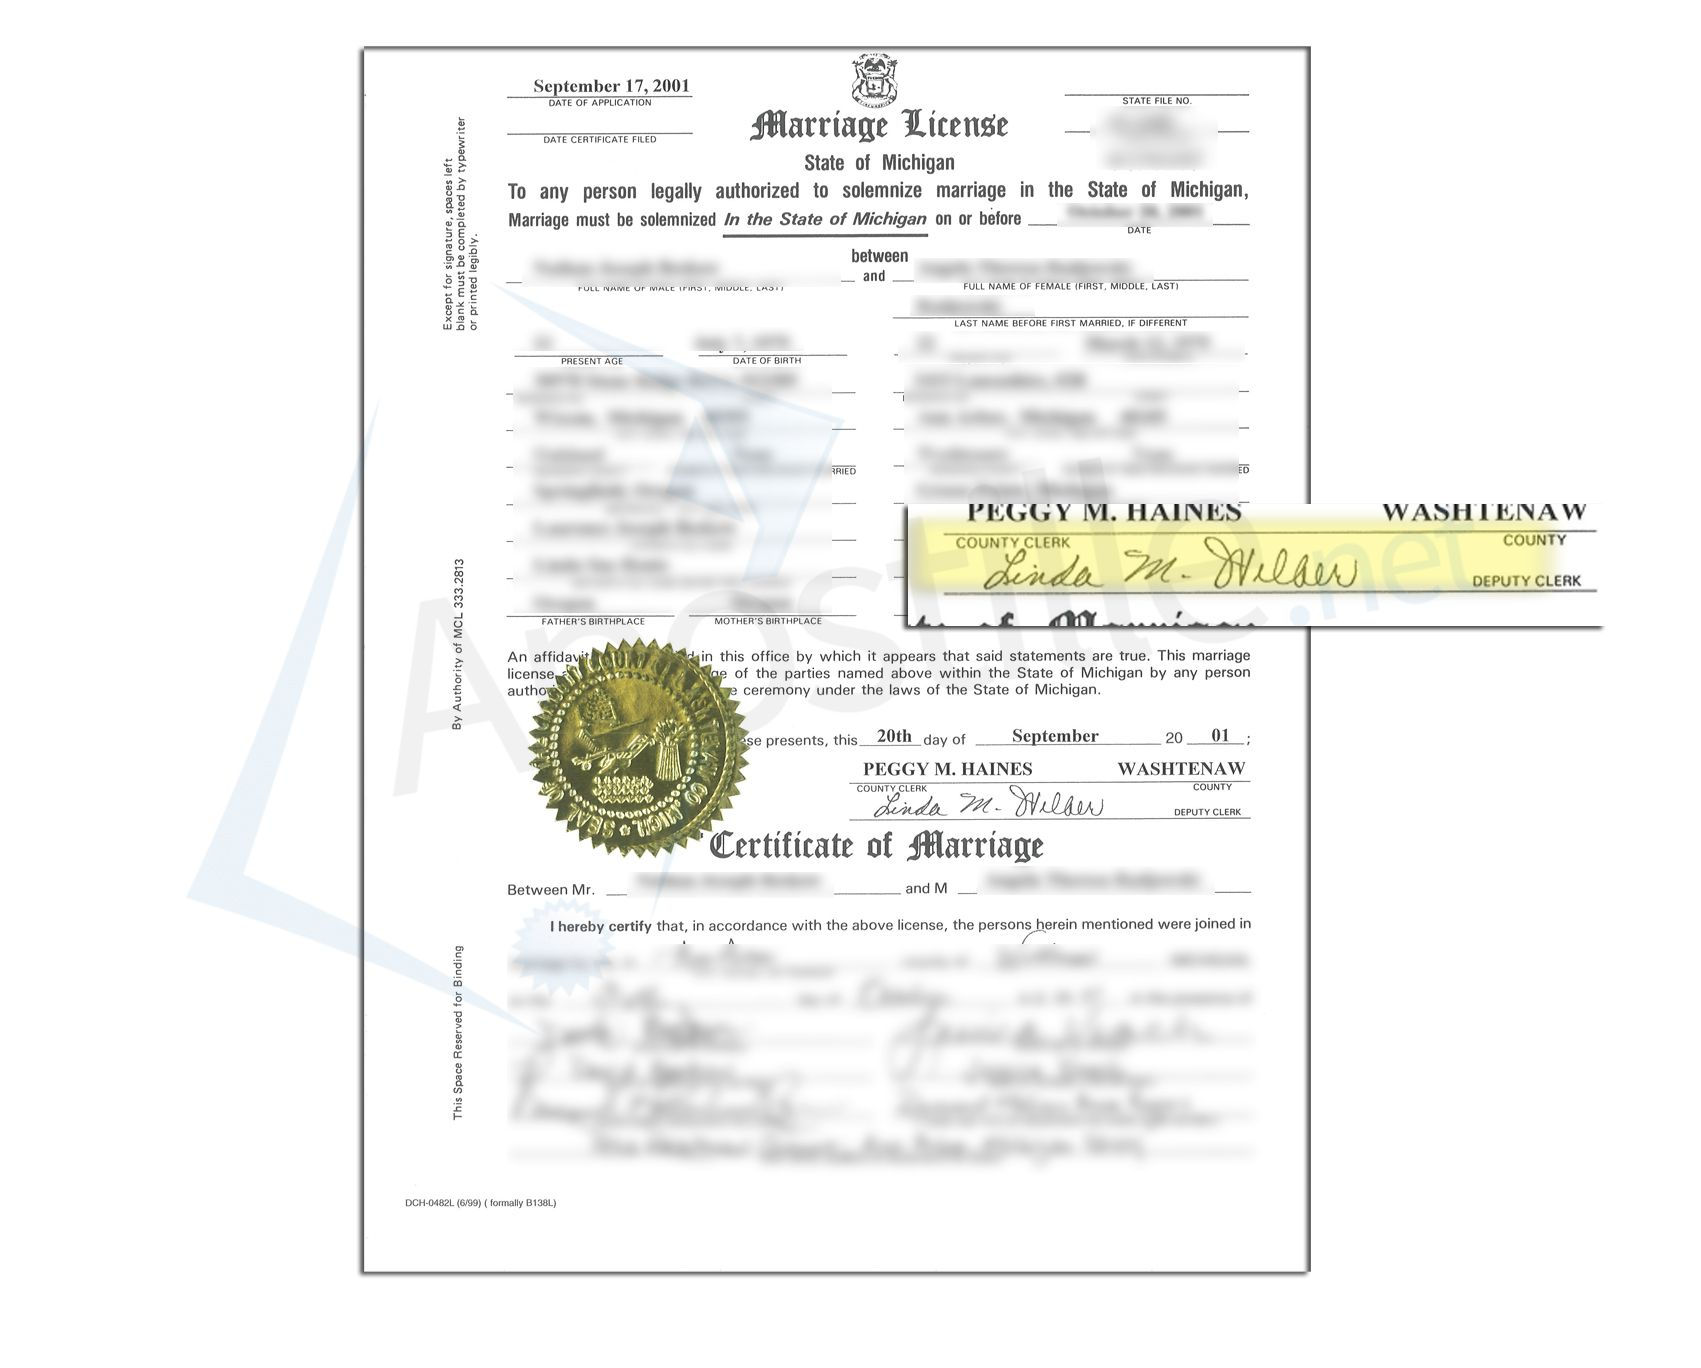 27 best state of michigan sample apostille images on pinterest county of washtenaw state of michigan marriage license signed by a deputy clerk xflitez Gallery